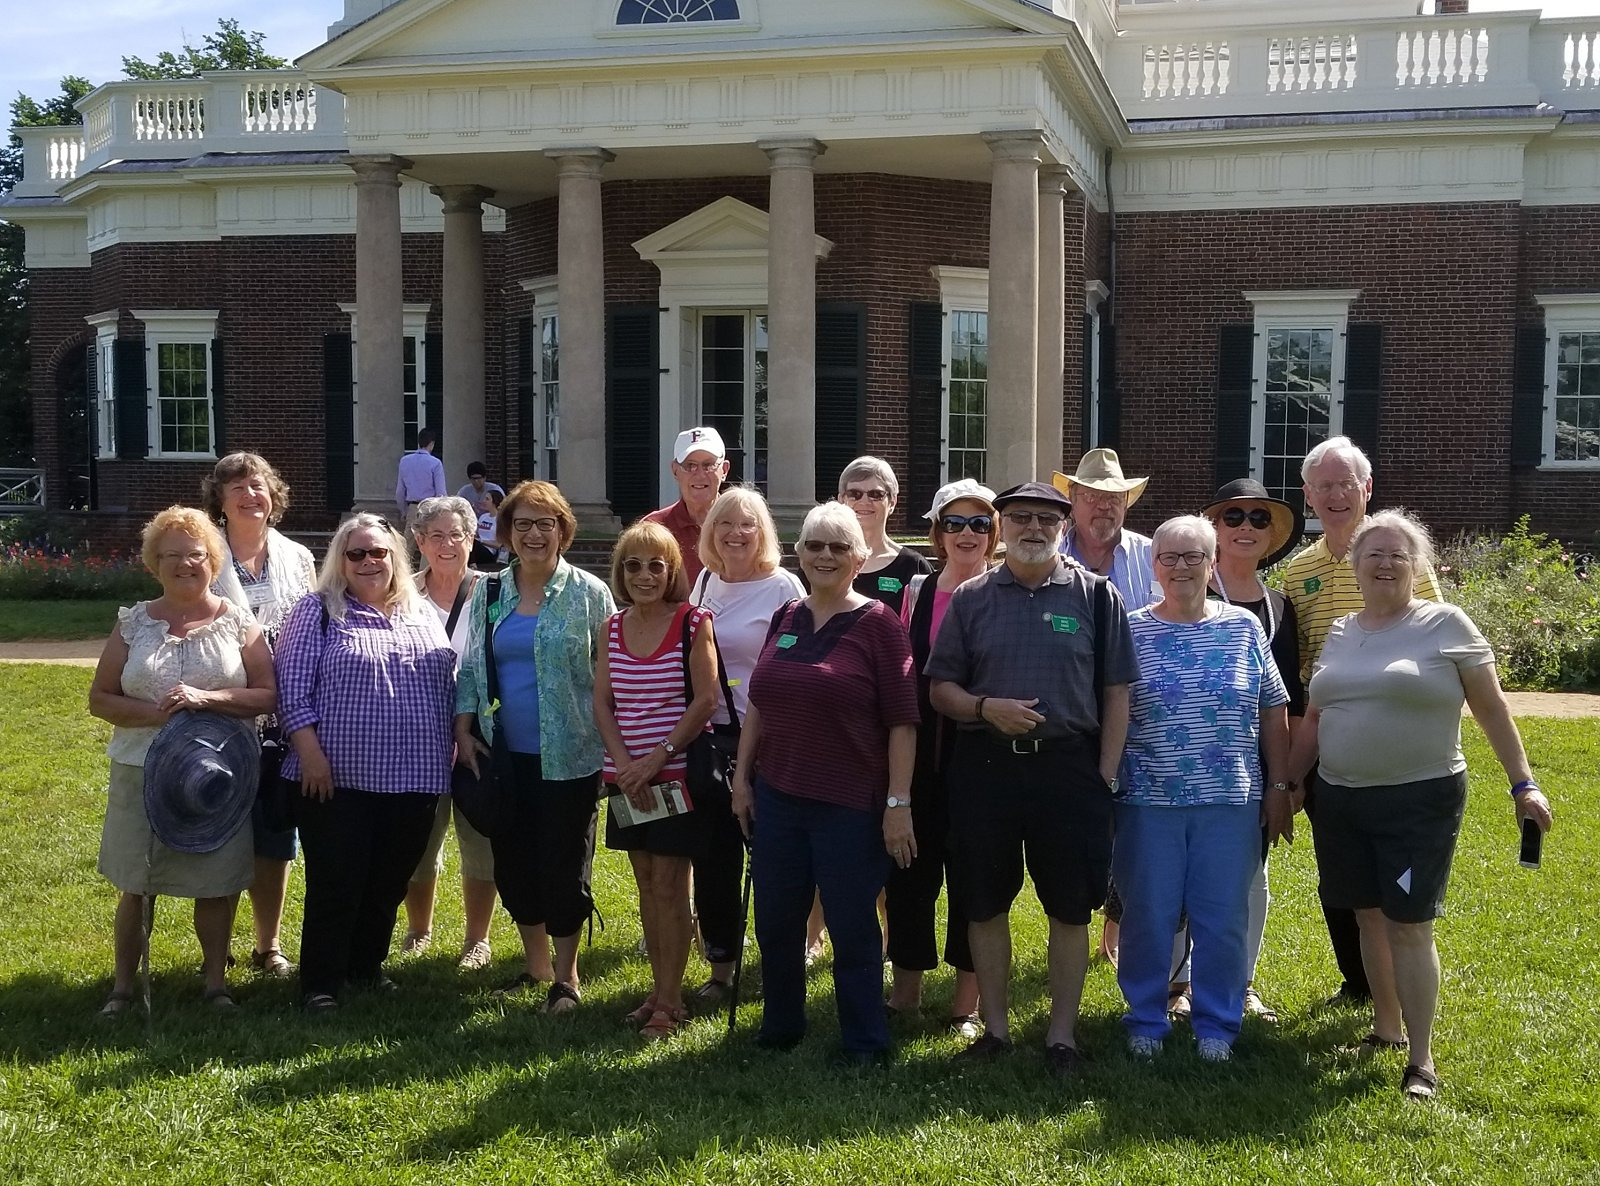 2018 Outbound Journey to FF Central Virginia - June 13-18 - Monticello